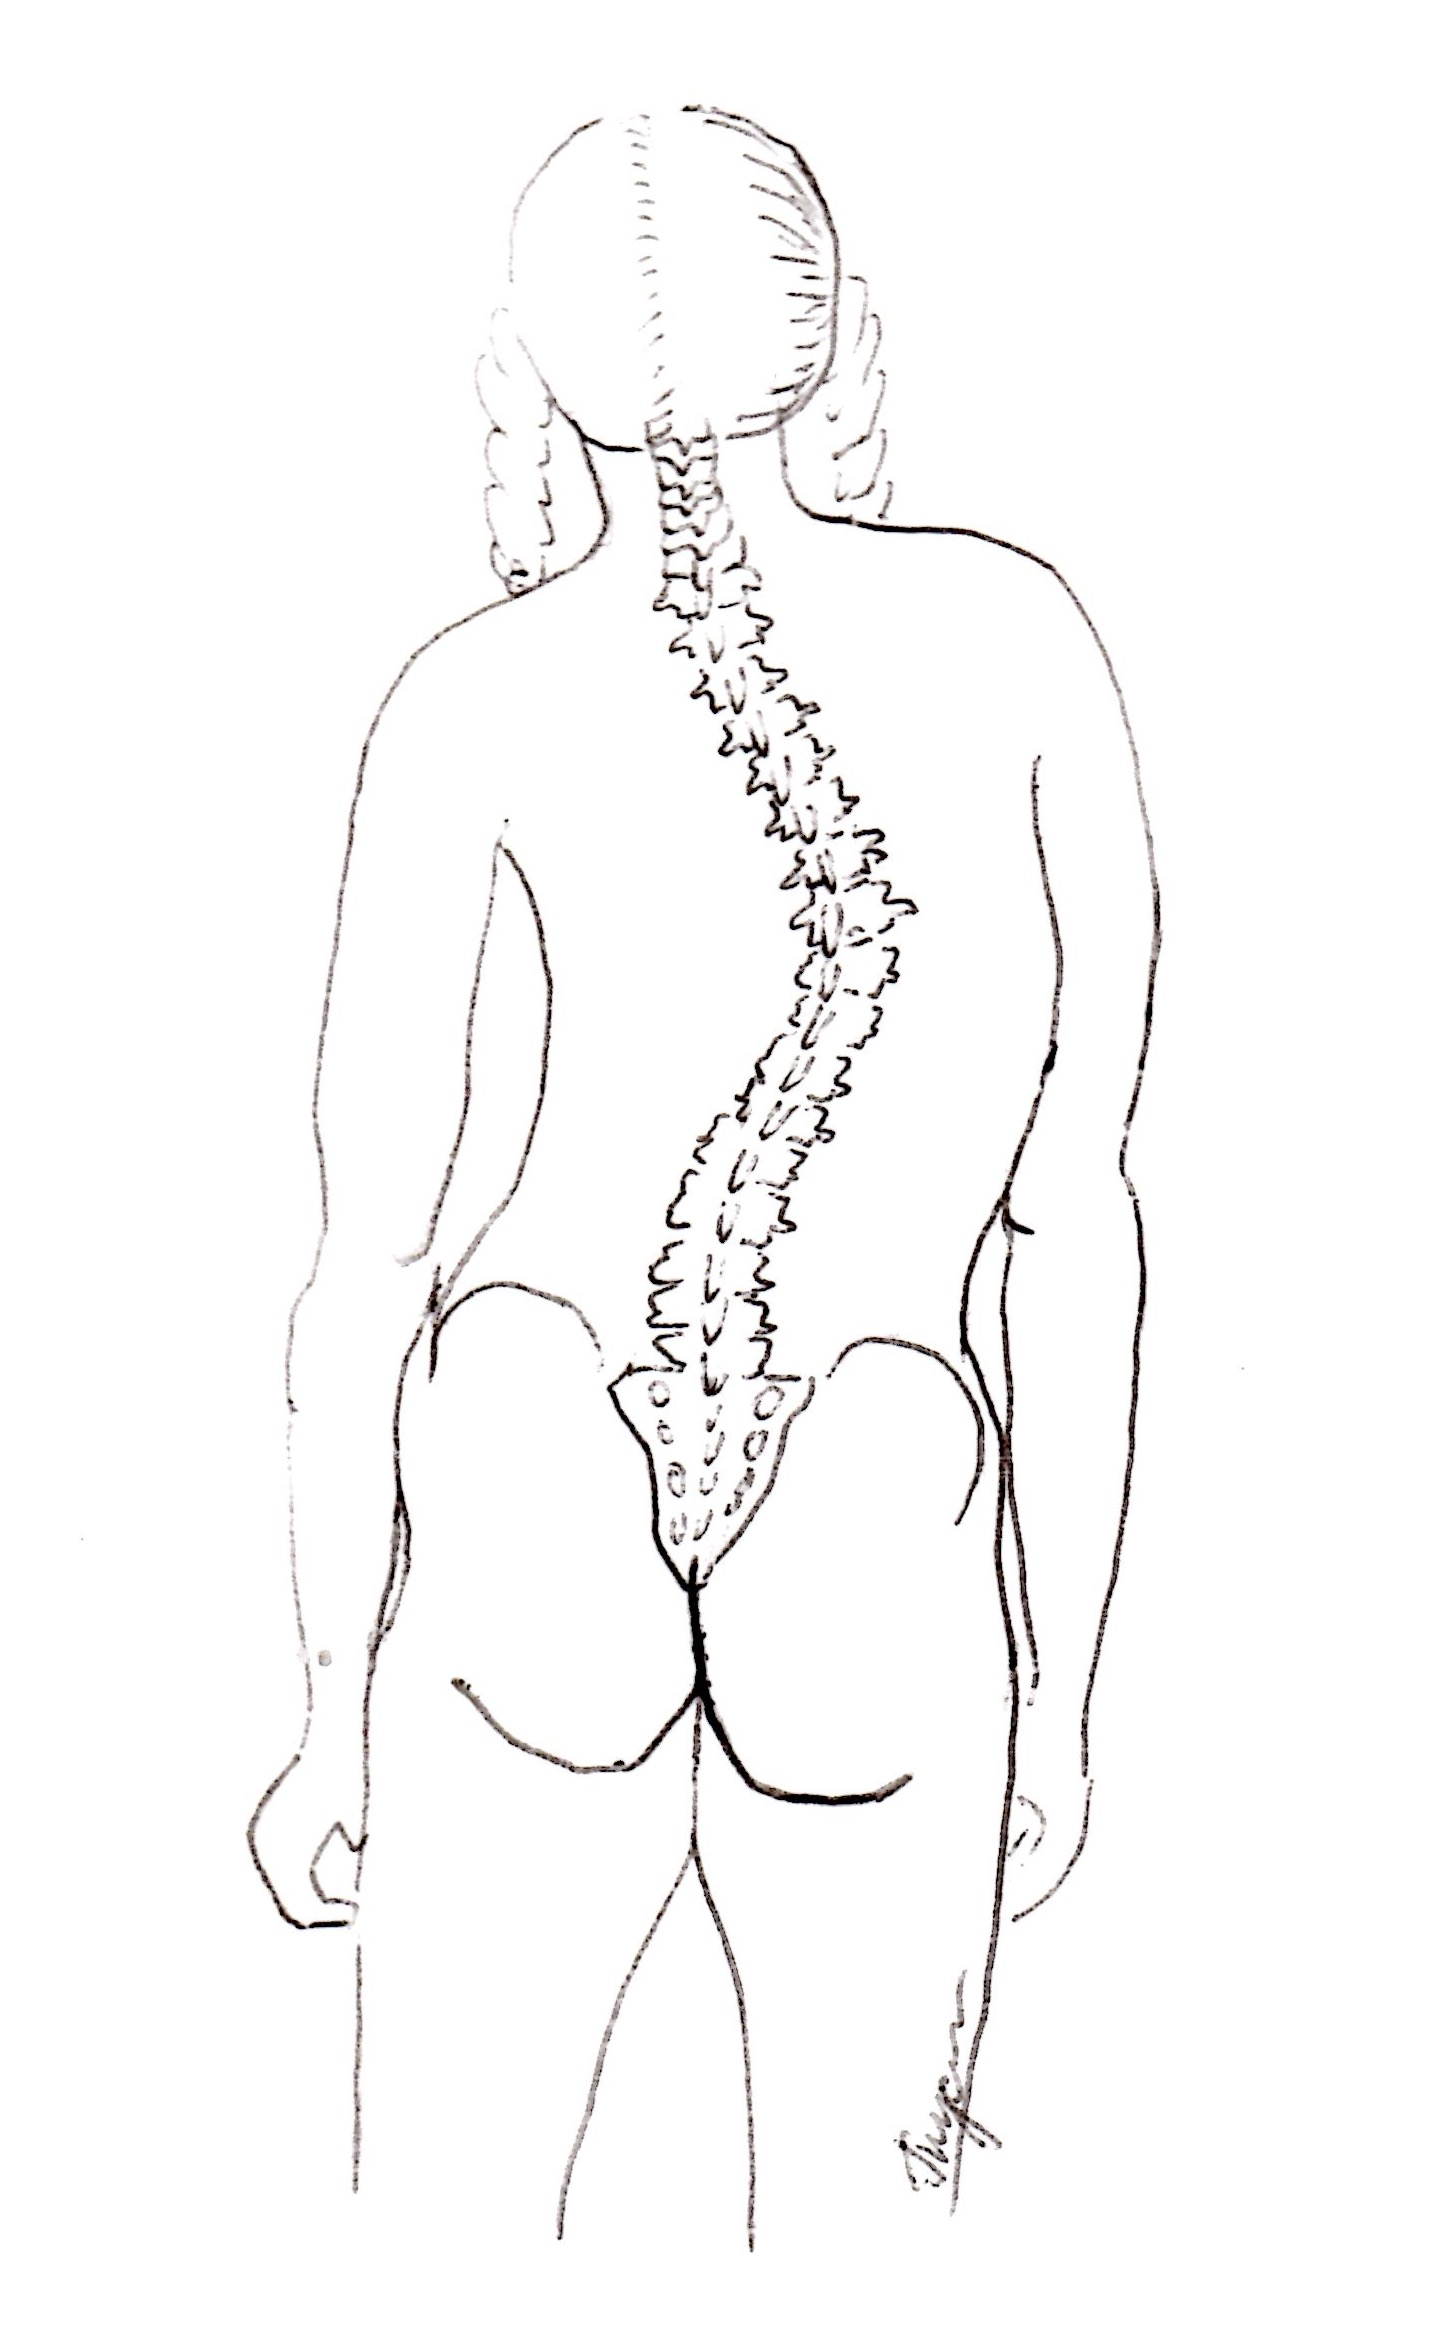 Scoliosis - more common than you think